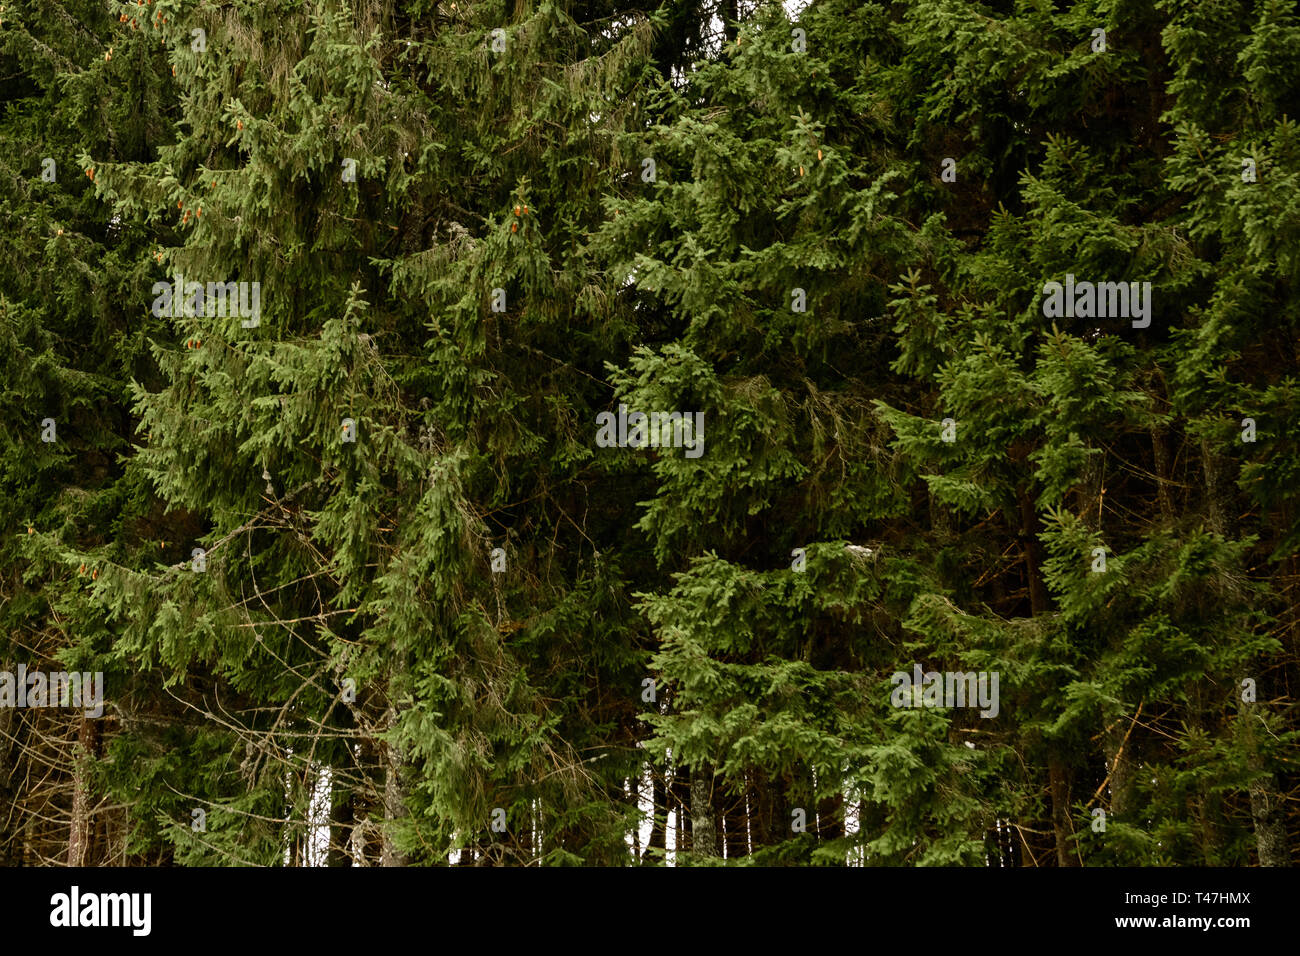 Detailed texture of conifer forest on hill close up, Background of tree tops on mountainside. 2019 - Stock Image